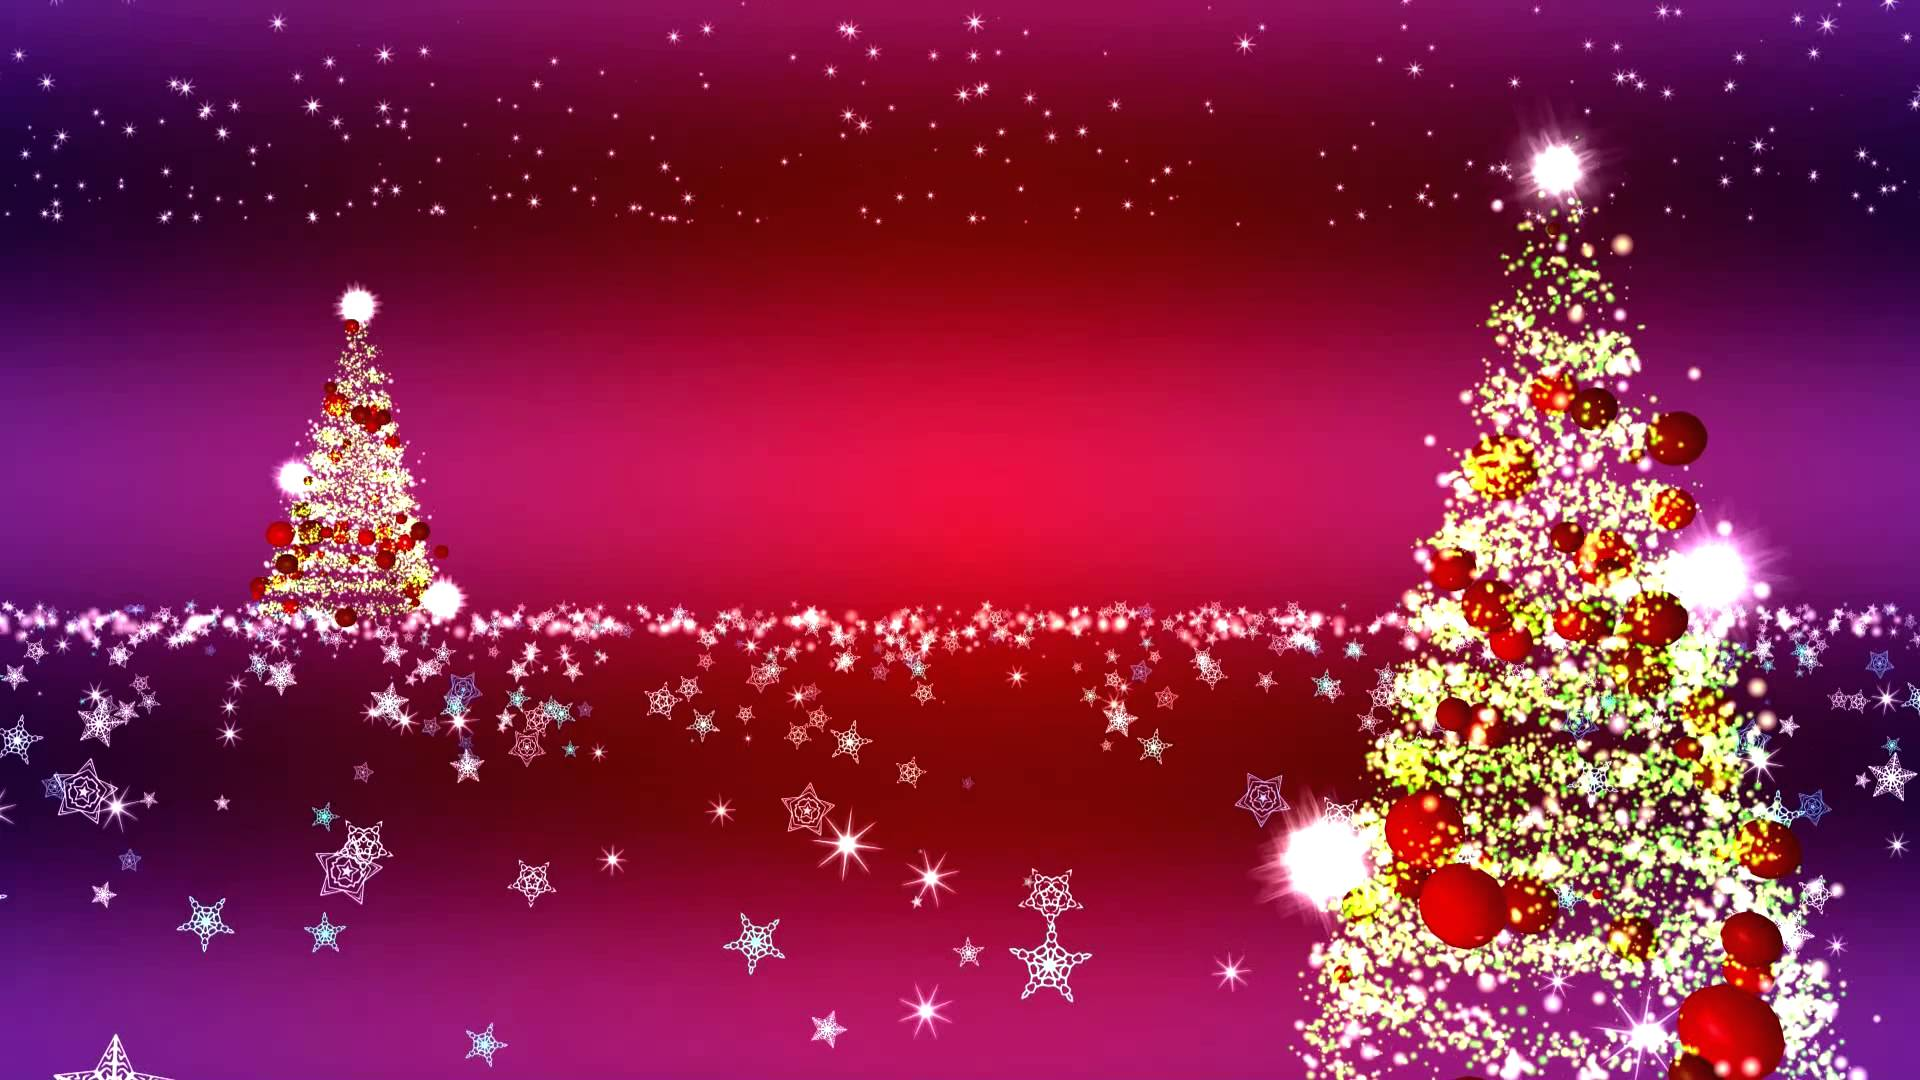 Christmas Animated Desktop Backgrounds HD Wallpapers